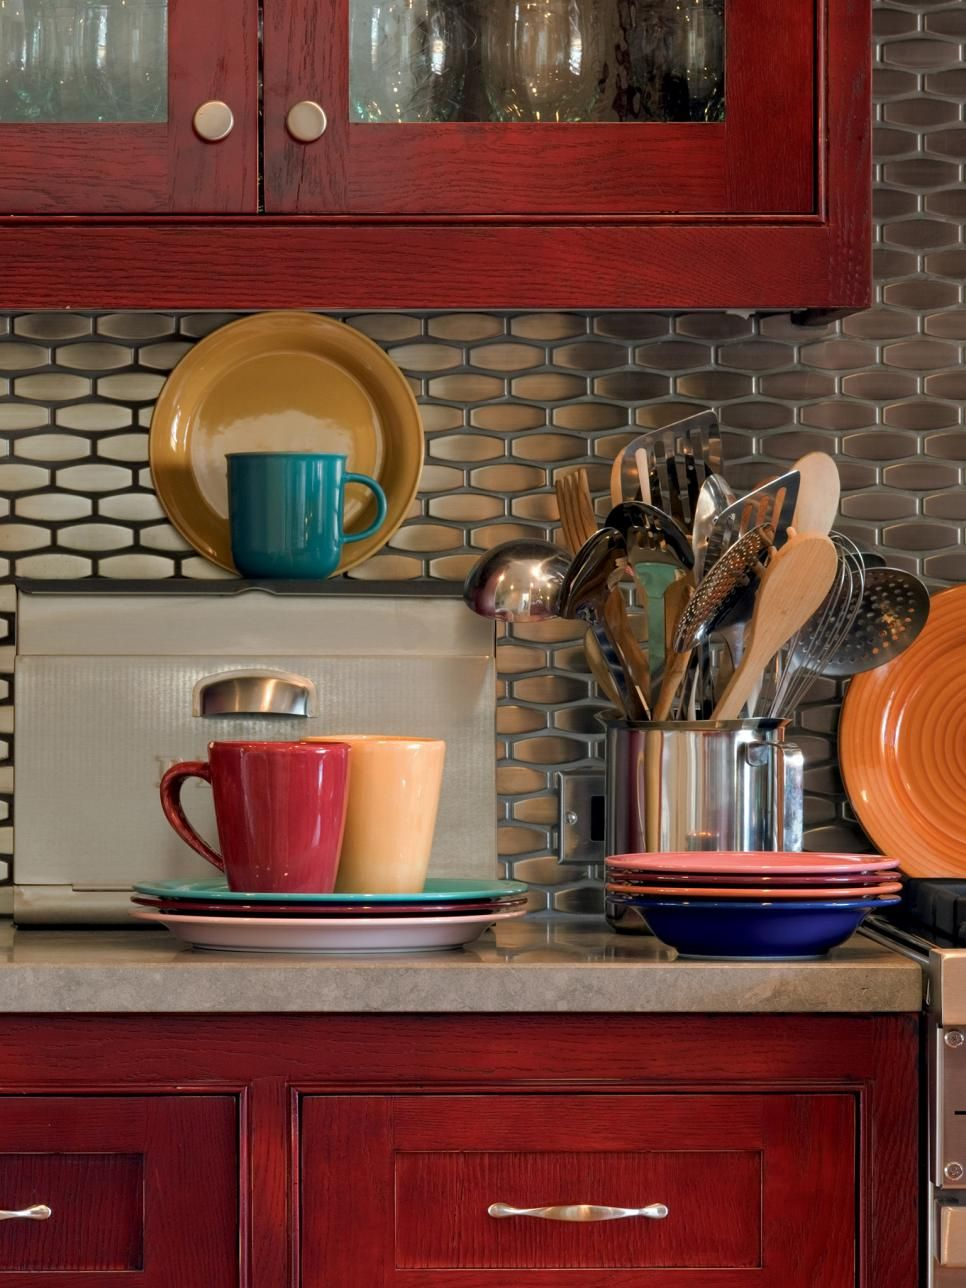 With This Metallic Kitchen Backsplash The Stainless Steel Tile Provides A Modern Contrast Against Multi Hued Fiestaware And Dark Red Cabinets